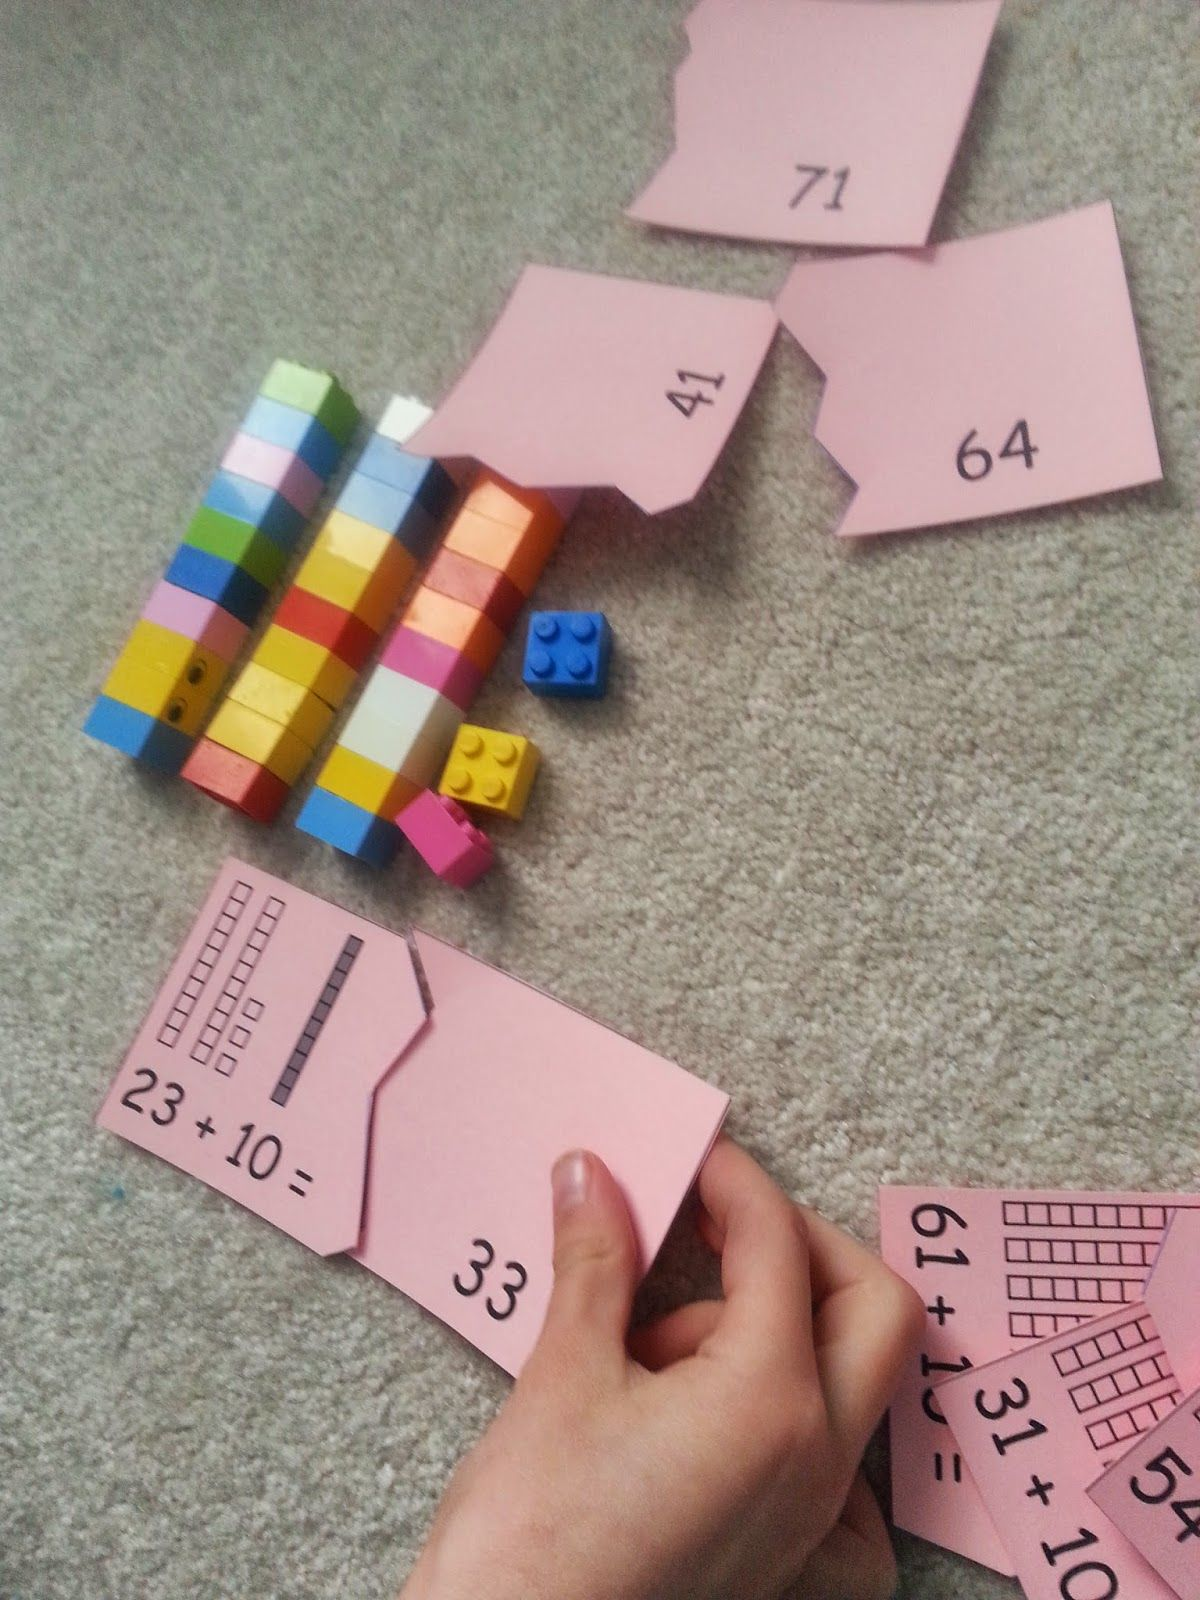 Solving The Puzzle Of Place Value